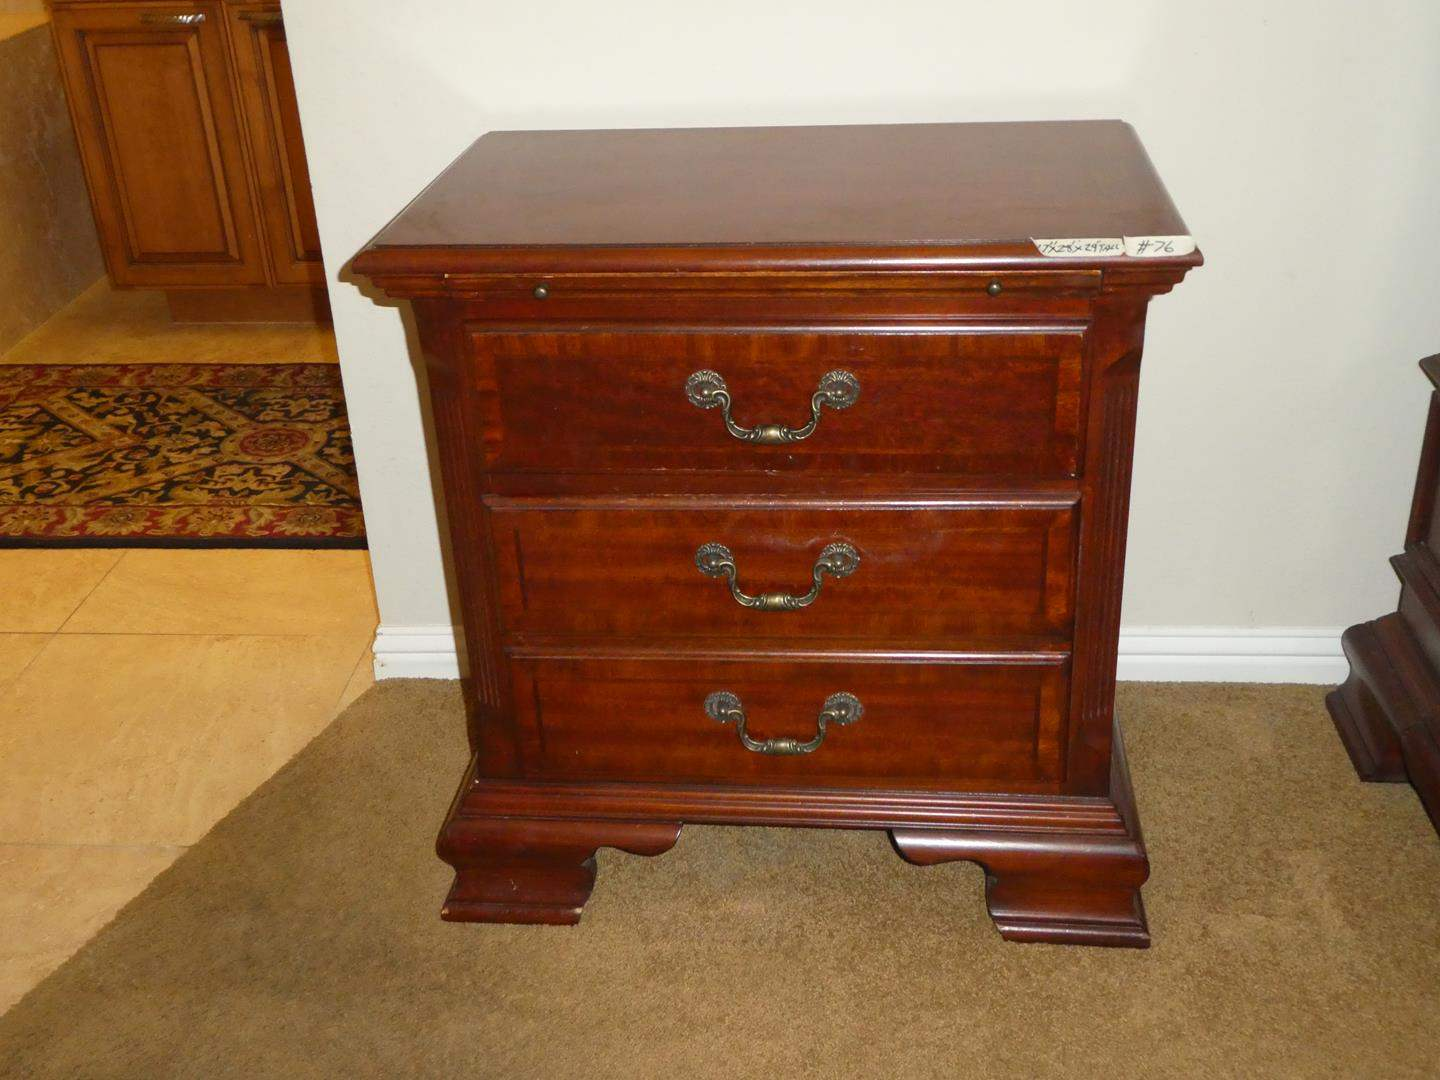 Lot # 76 - Wooden 2 Drawer Nightstand w/Pull Out Tray (main image)